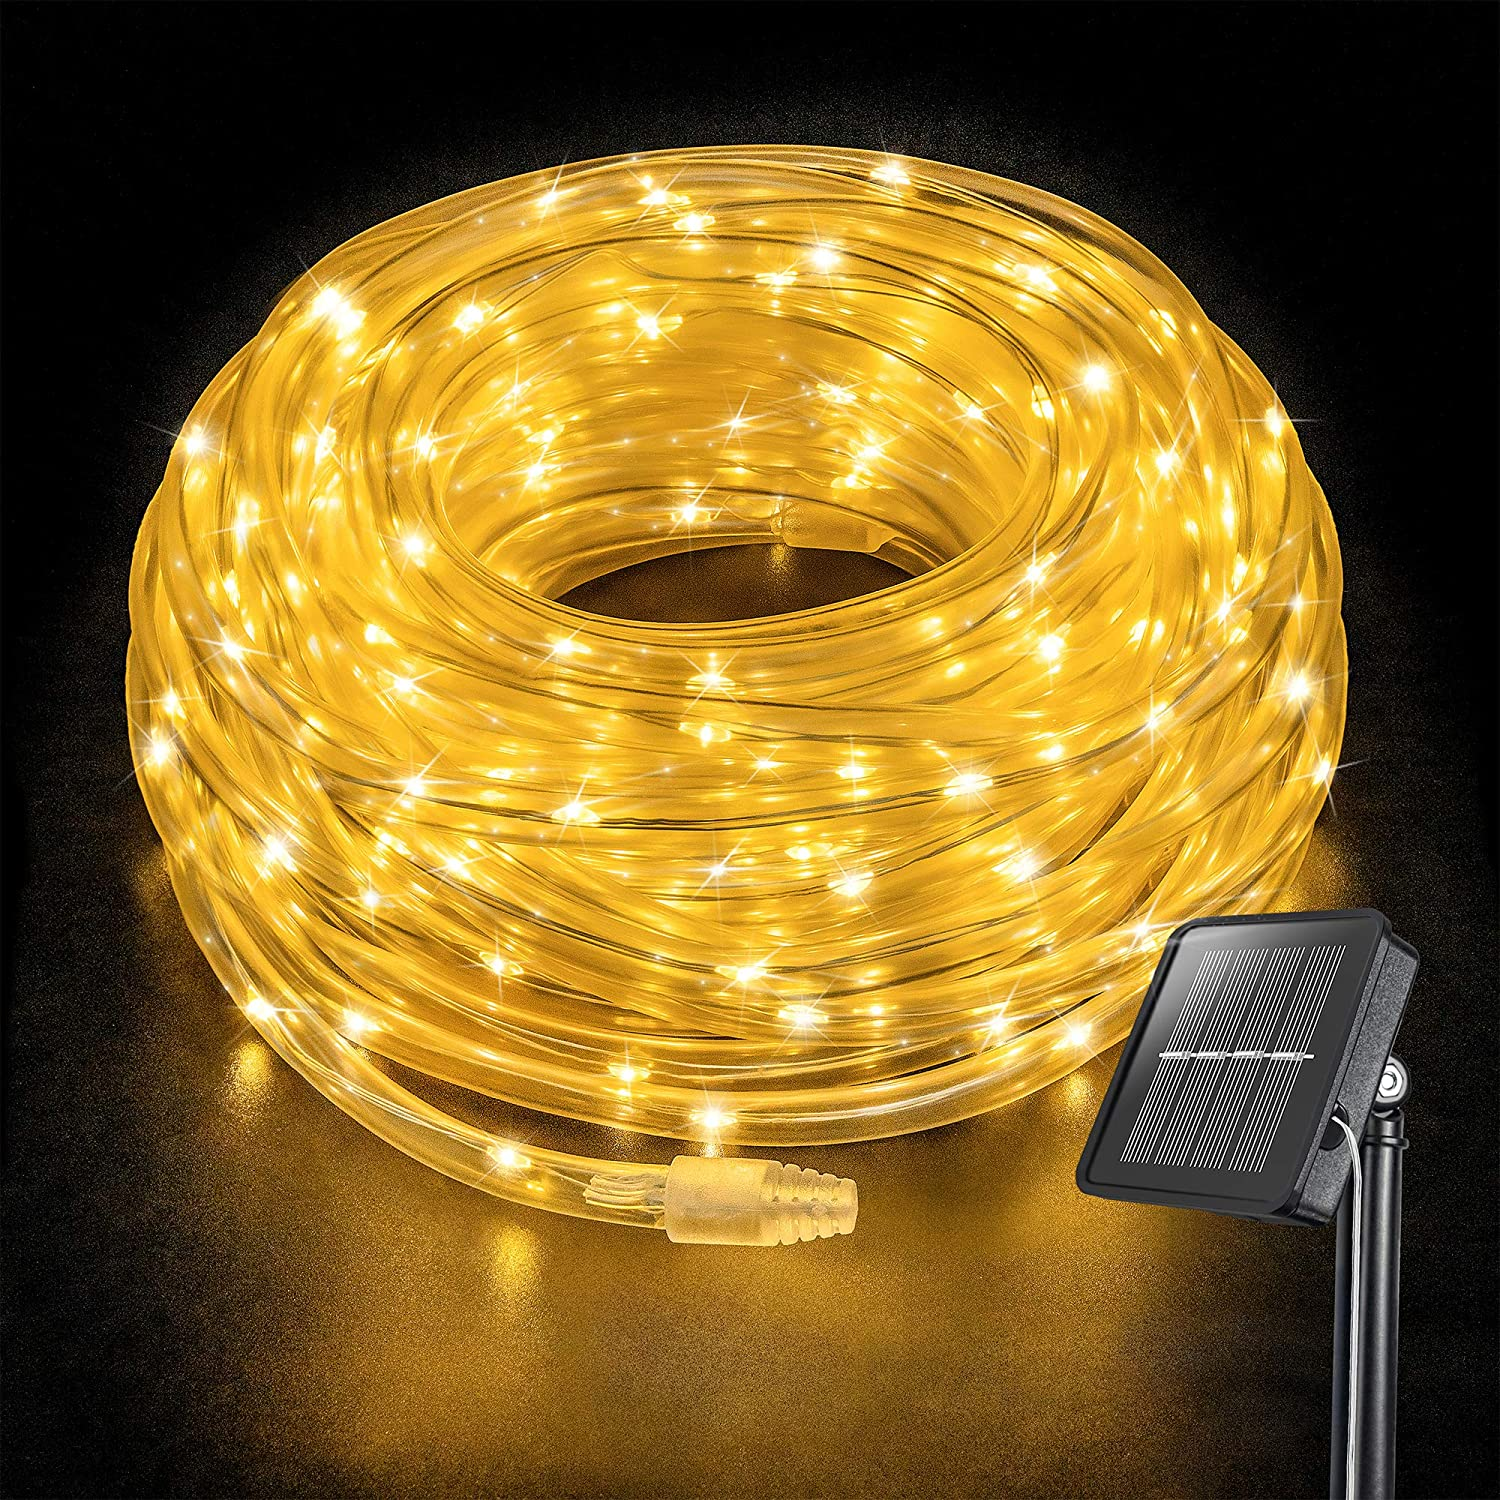 Oopswow 8 Modes Solar Powered Light Rope,37.7ft 200LED Outdoor Solar Rope Lights, Waterproof Solar LED Christmas Light for Garden, Fence, Patio, Yard, Wedding, Christmas,Halloween (Warm White)